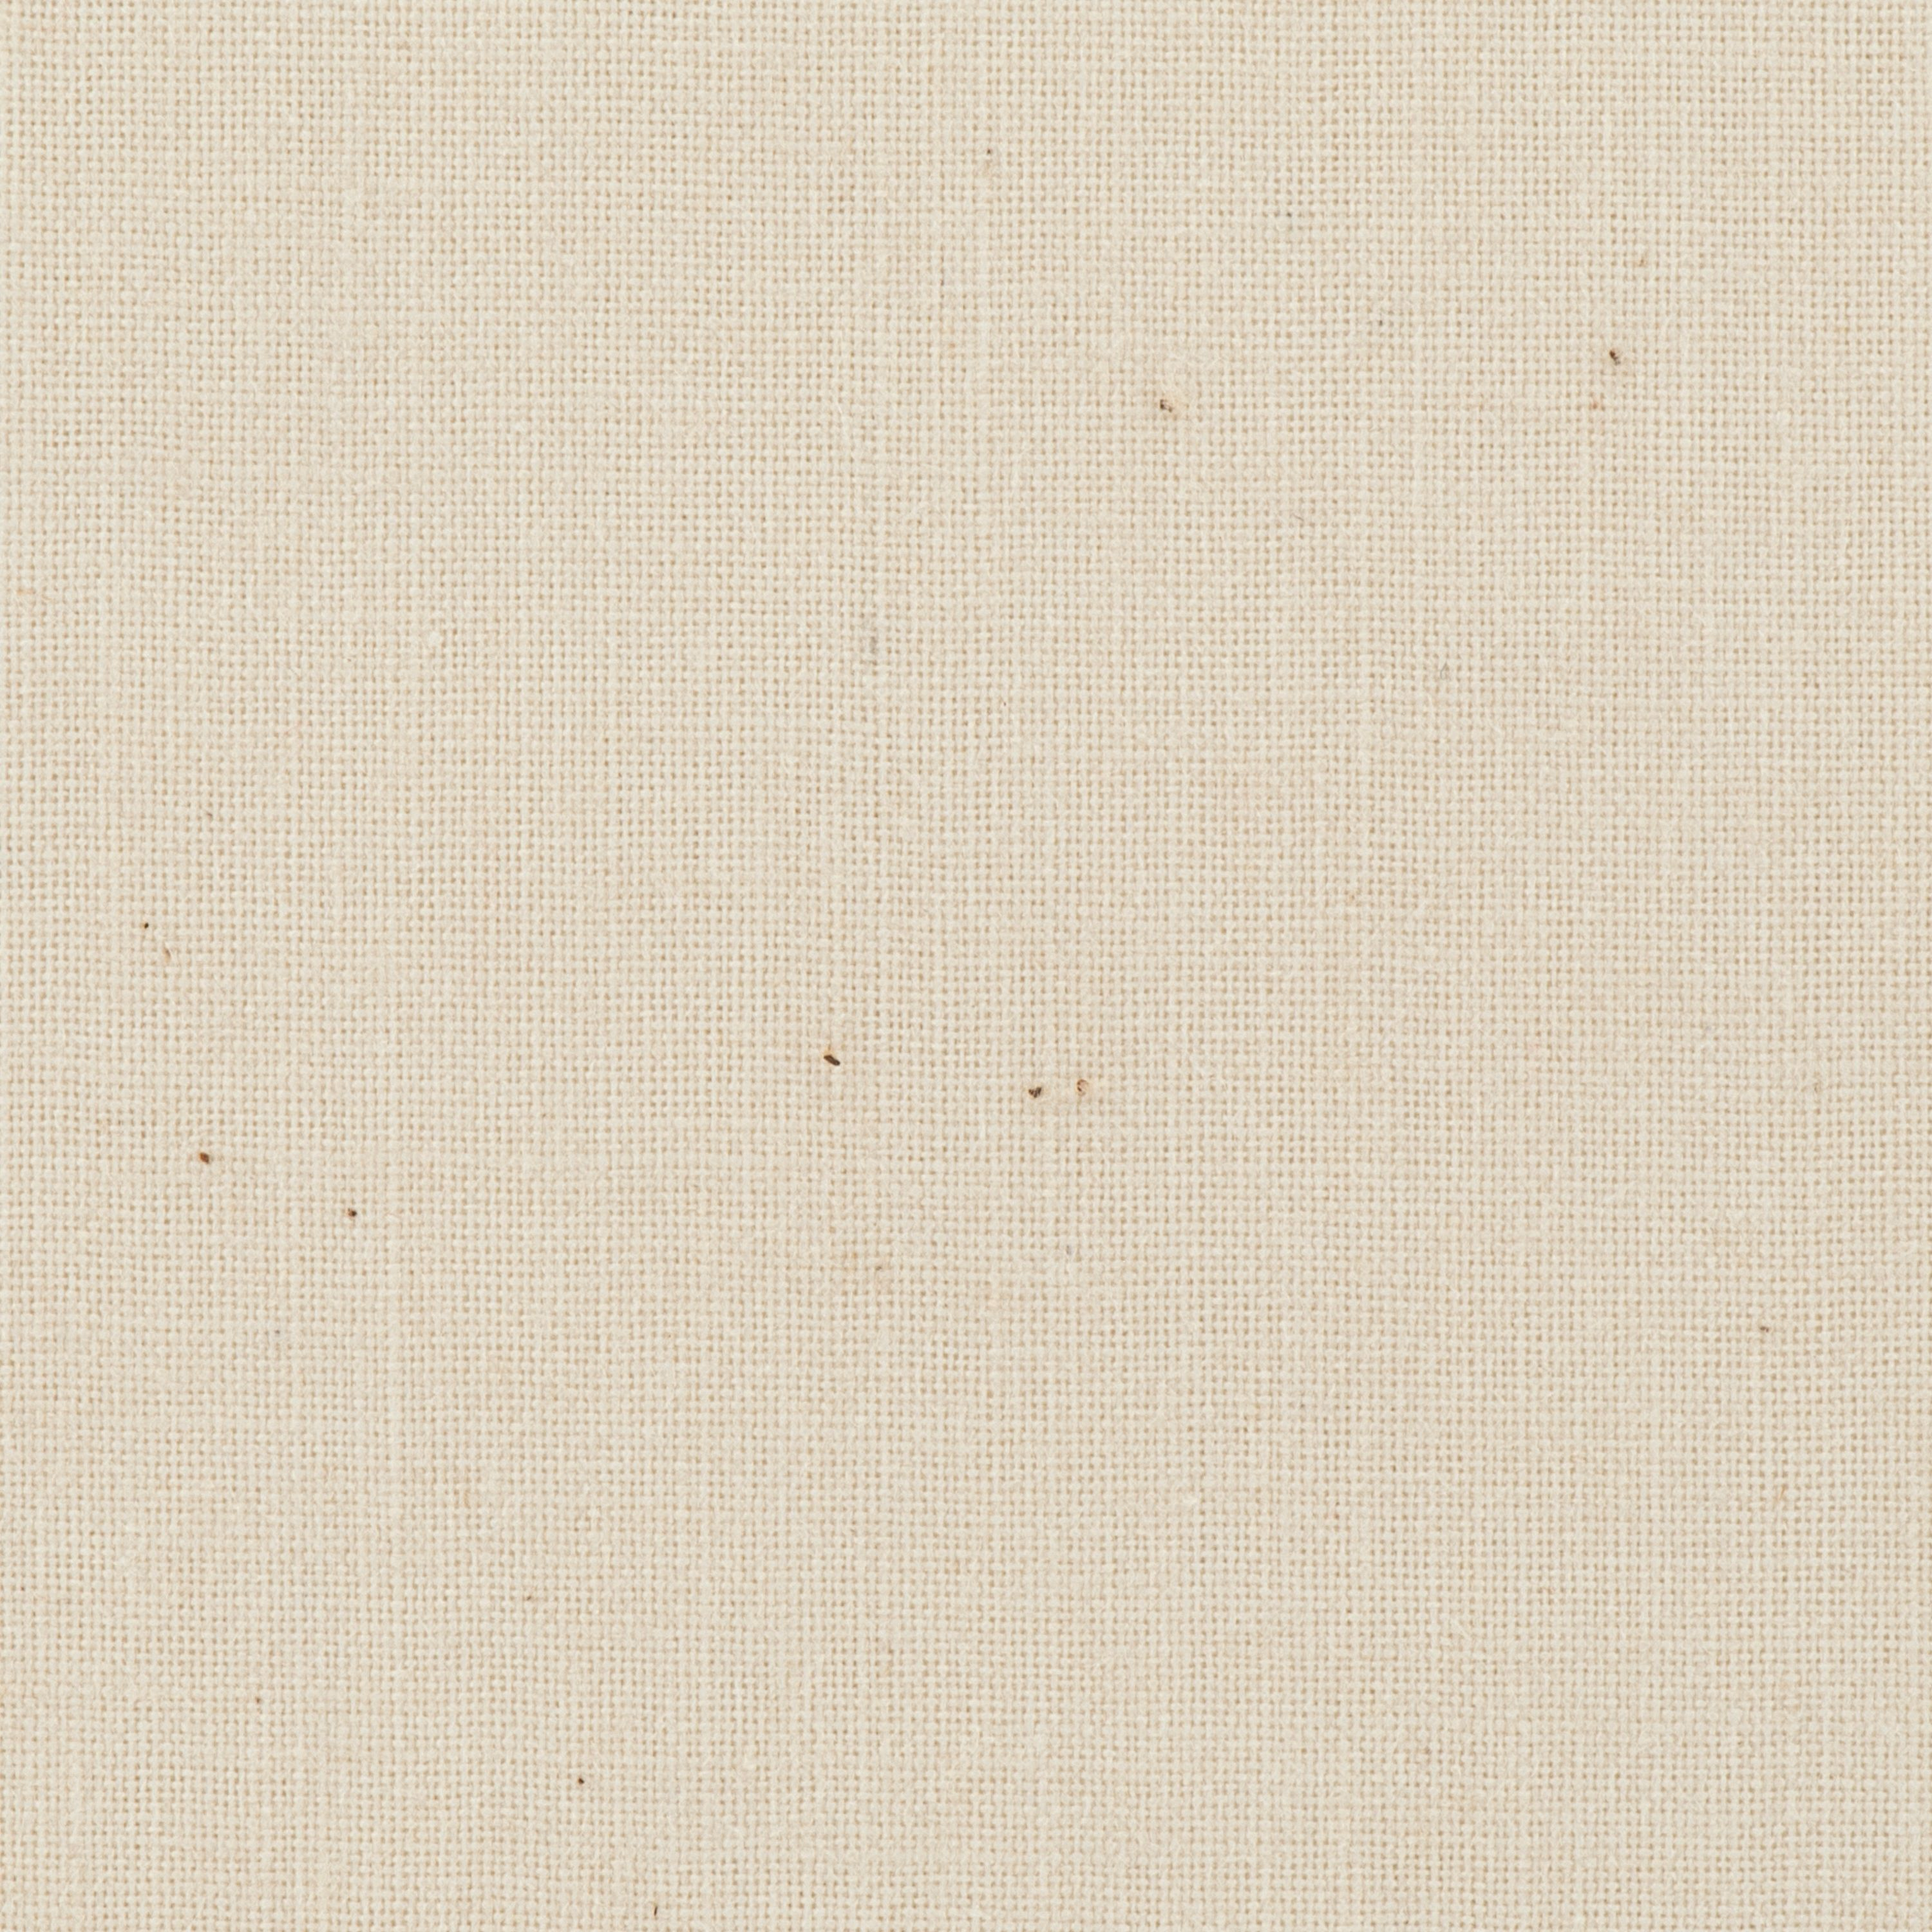 "Muslin 90"" Wide Cotton 68x68ct, 15 yd, Unbleached/Natural"